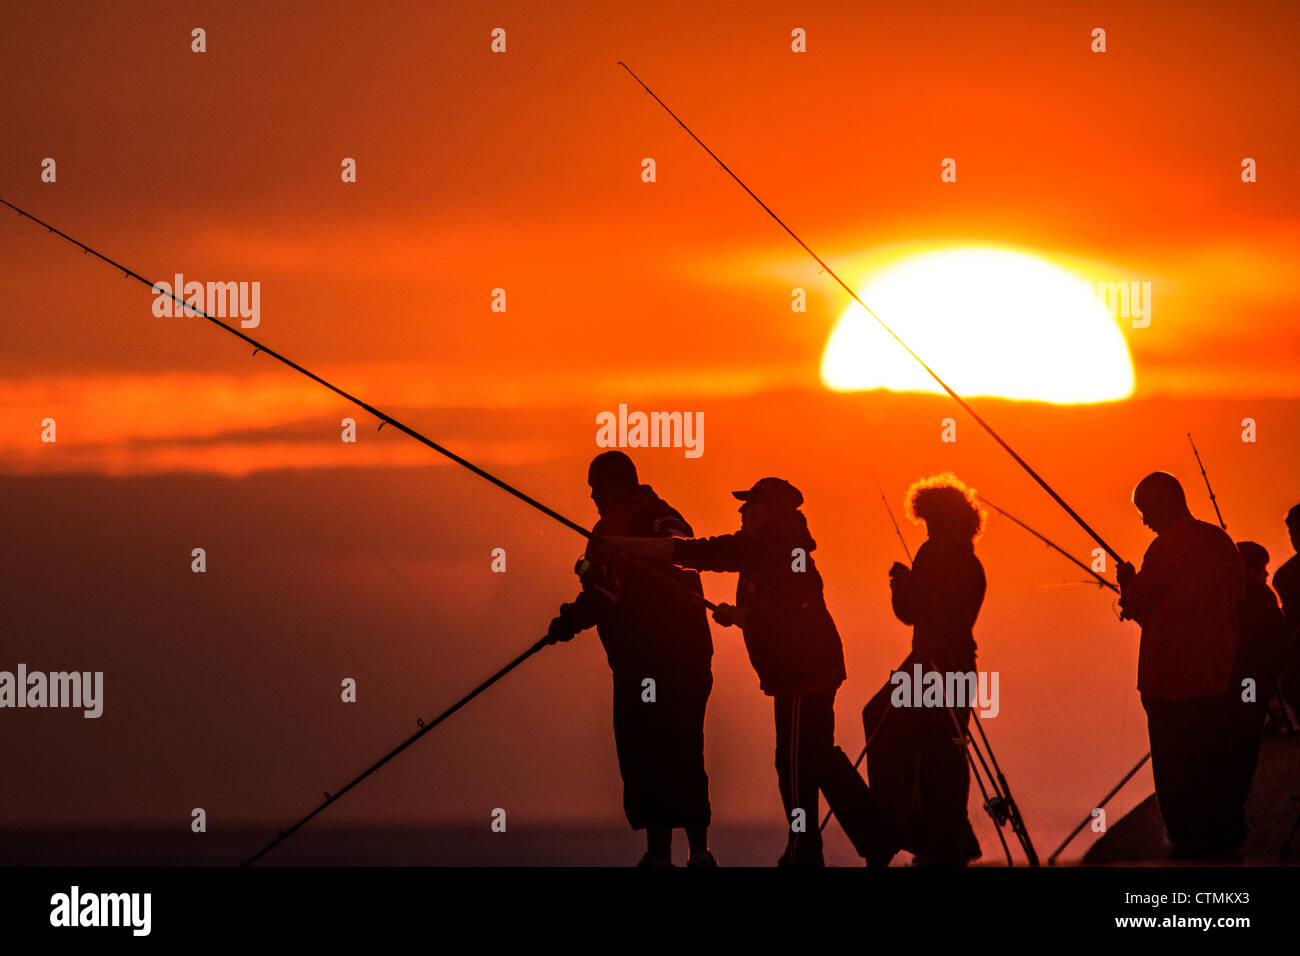 Fishing Rods At Sunset Stock Photos & Fishing Rods At Sunset Stock ...